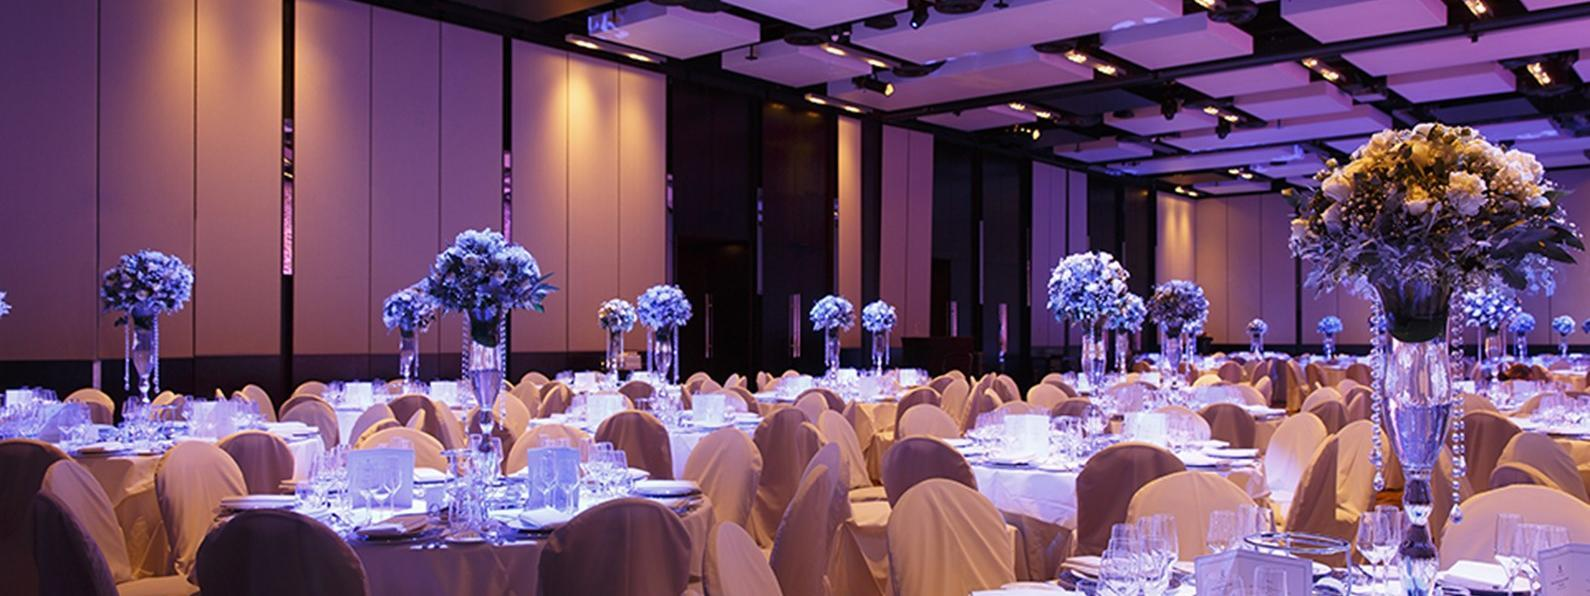 Promenade Room meeting hall at Crown Hotel Melourne